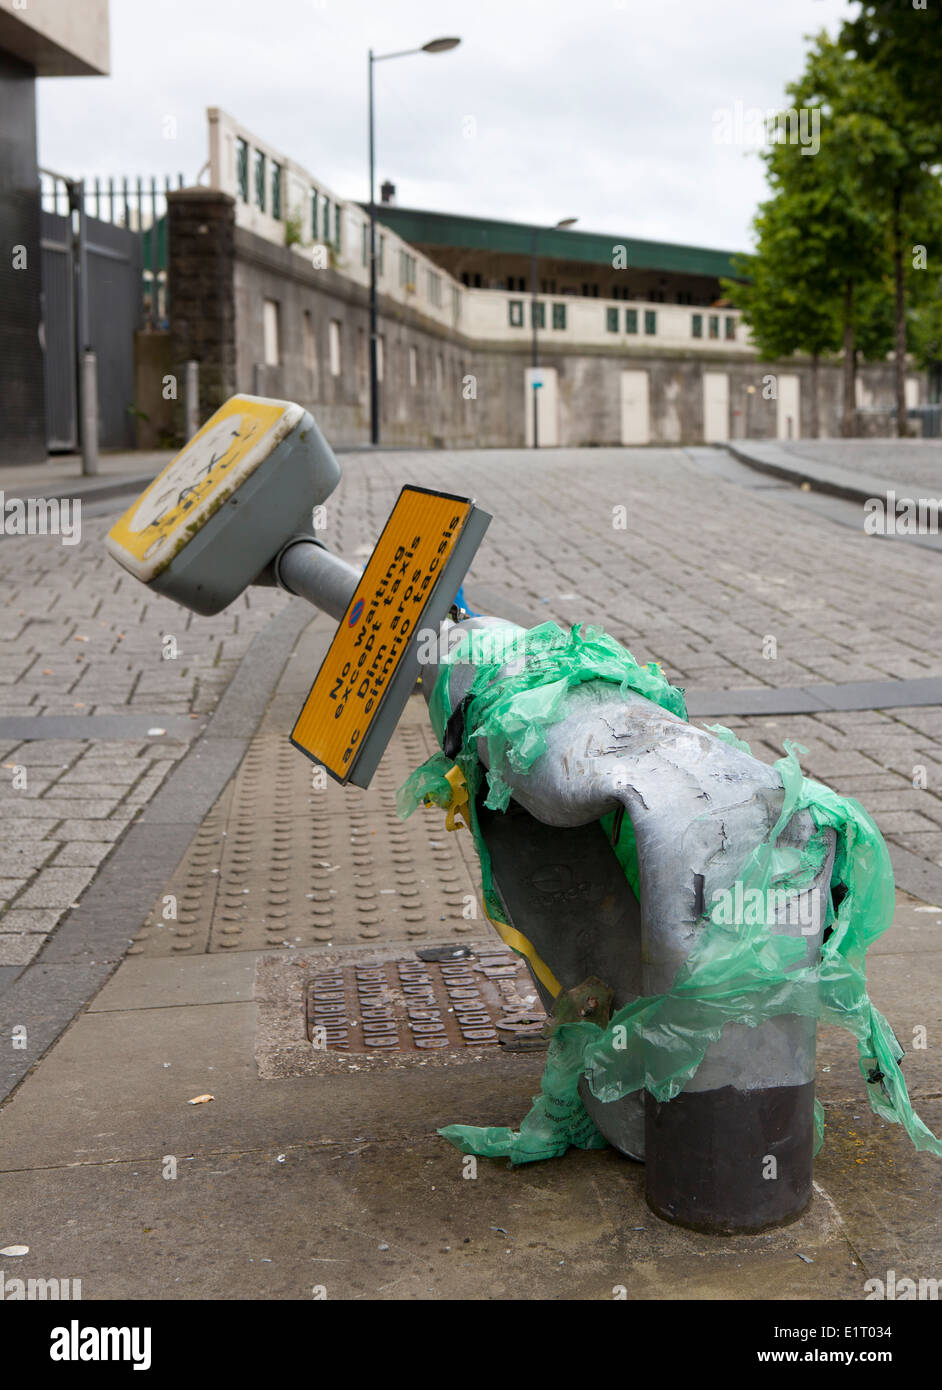 Damaged street furniture in Manchester after traffic accident, UK - Stock Image